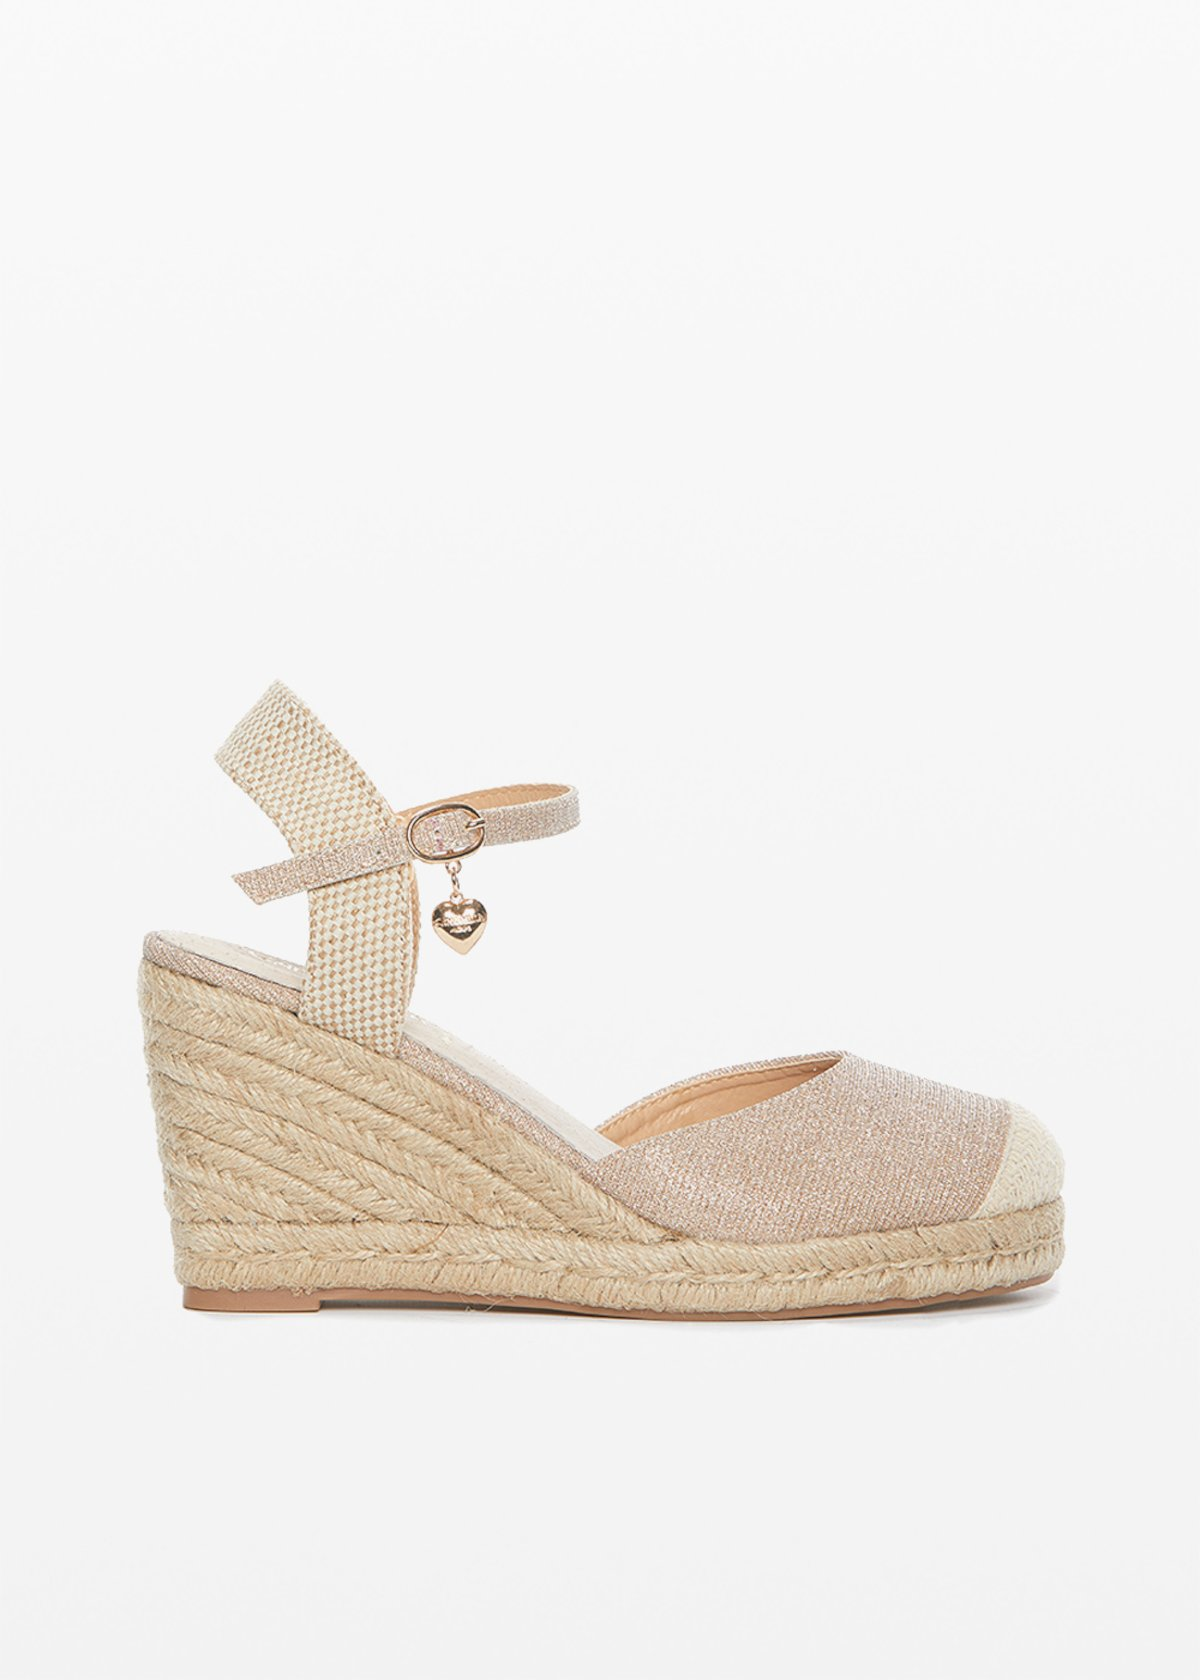 Sery glitter effect closed sandals with wedge - Doeskin - Woman